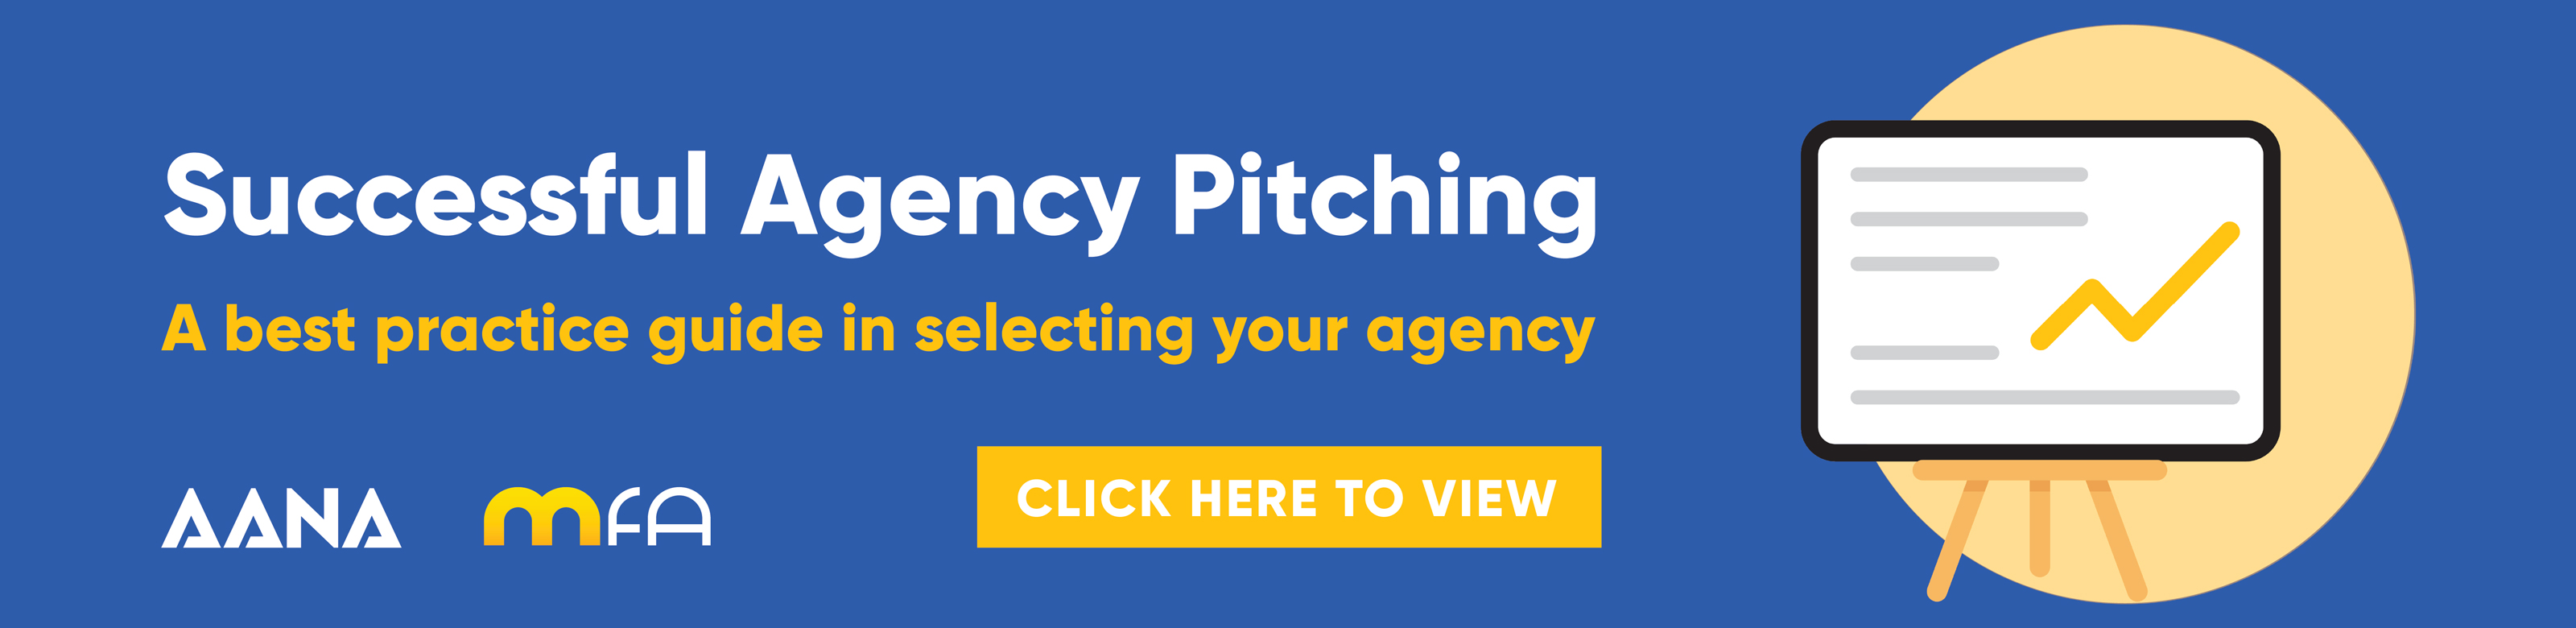 SuccessfulAgencyPitching_BANNER_HomepageSlider_1600x390px